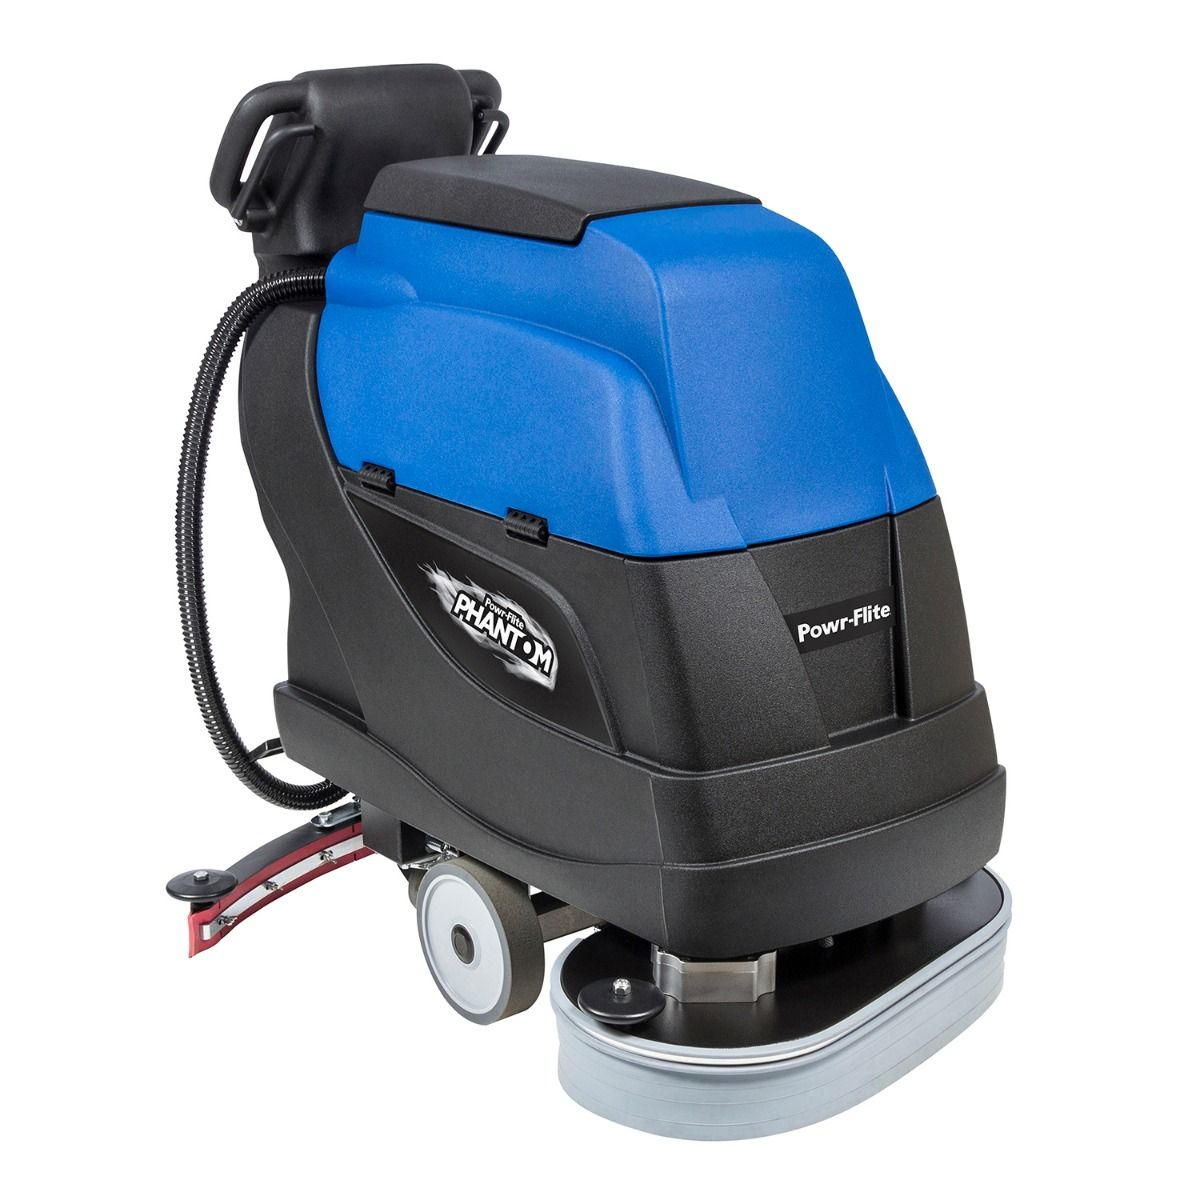 Powr-Flite 24 Inch Traction Drive Floor Scrubber